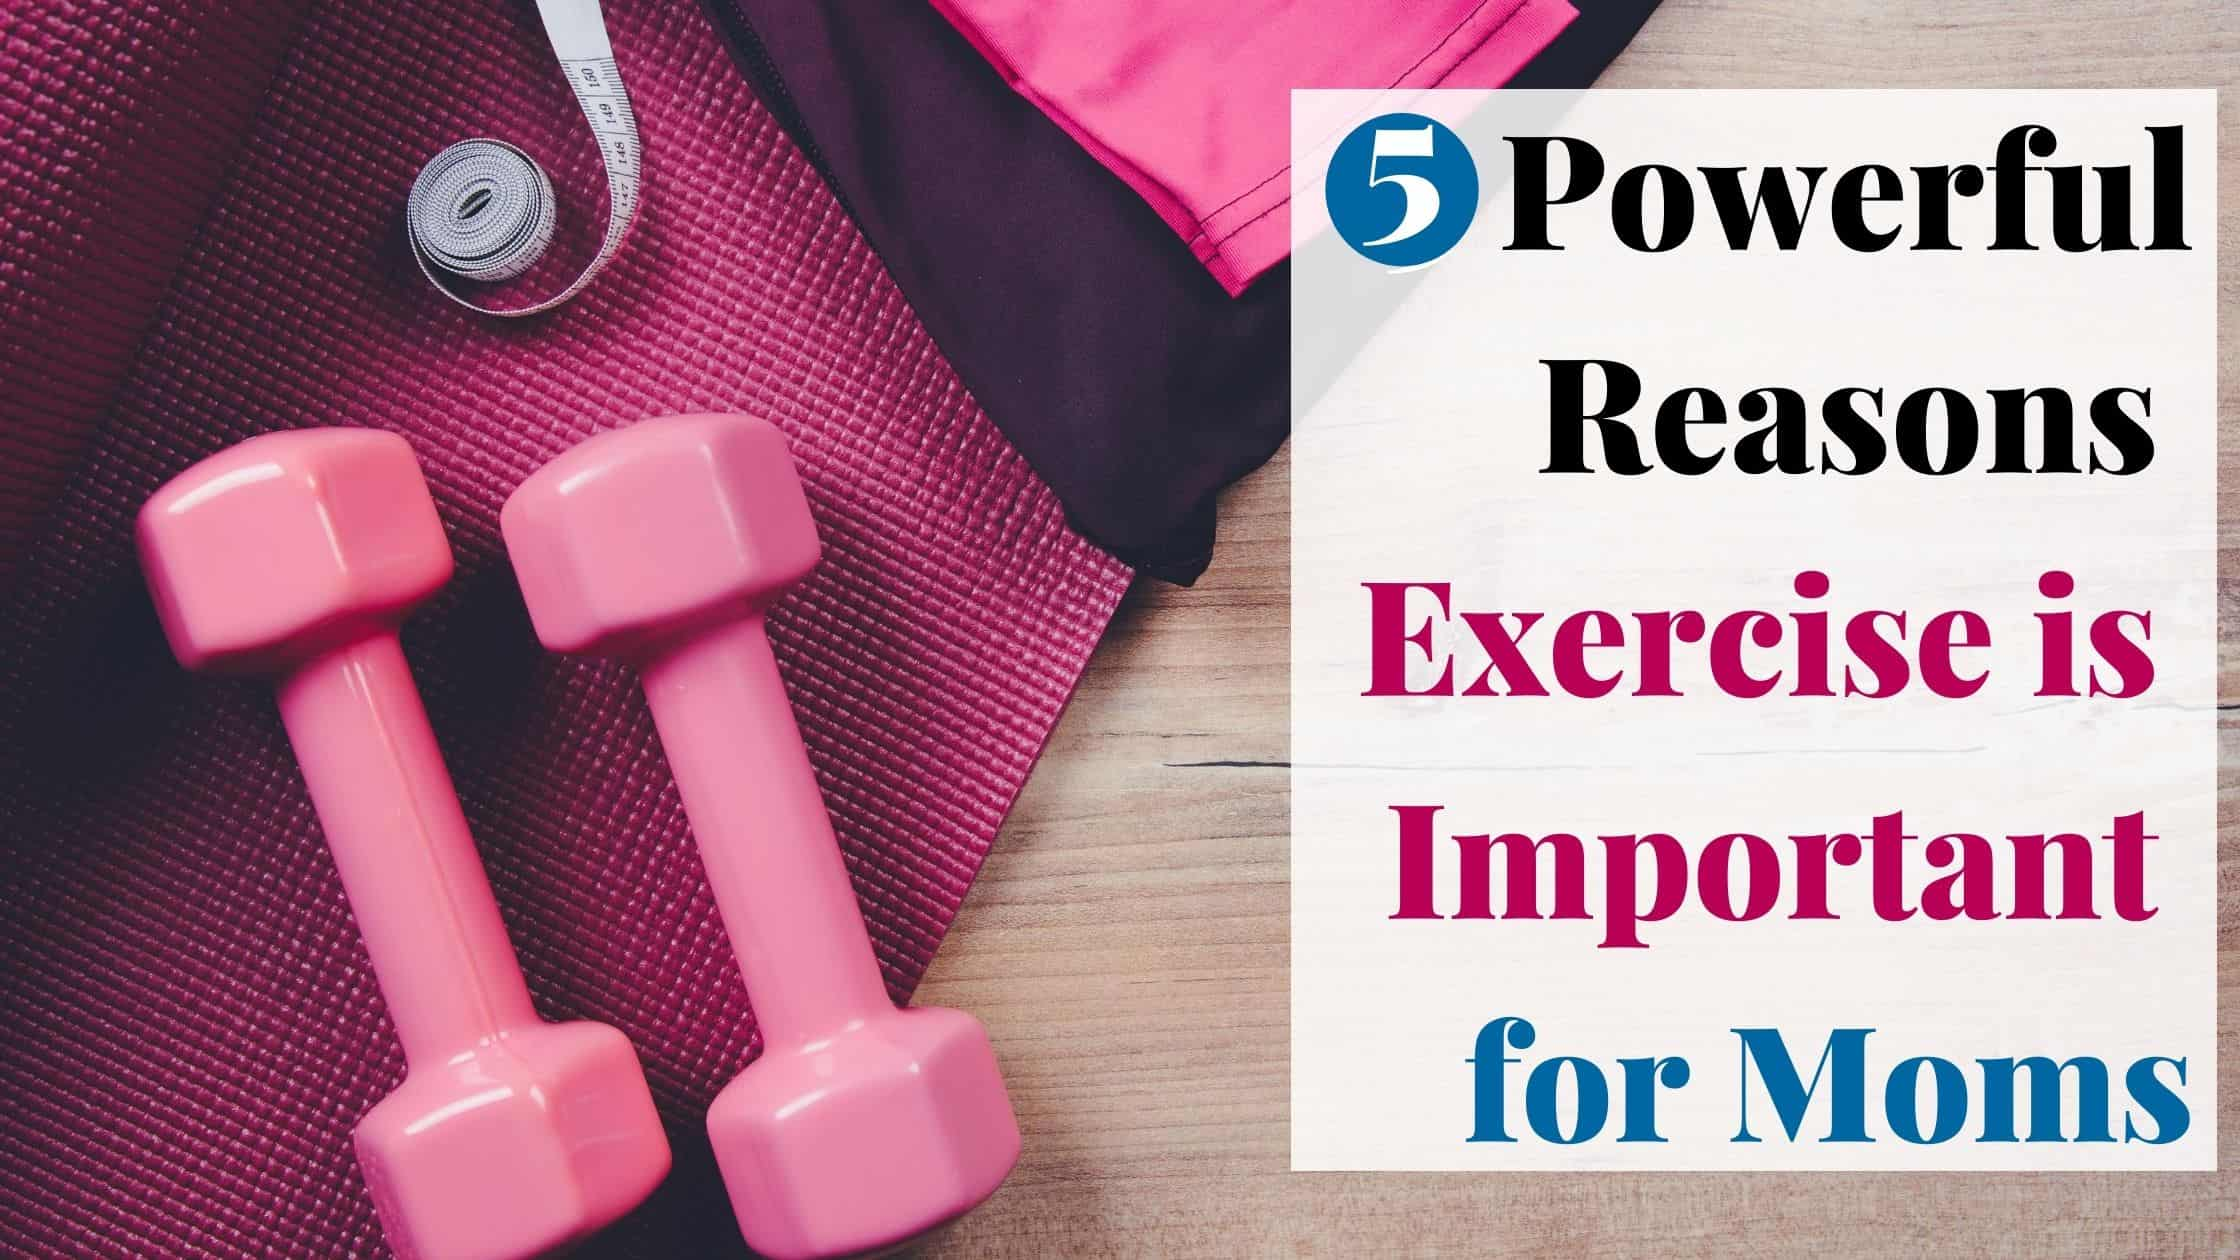 5 Powerful Reasons Exercise is Important for Moms